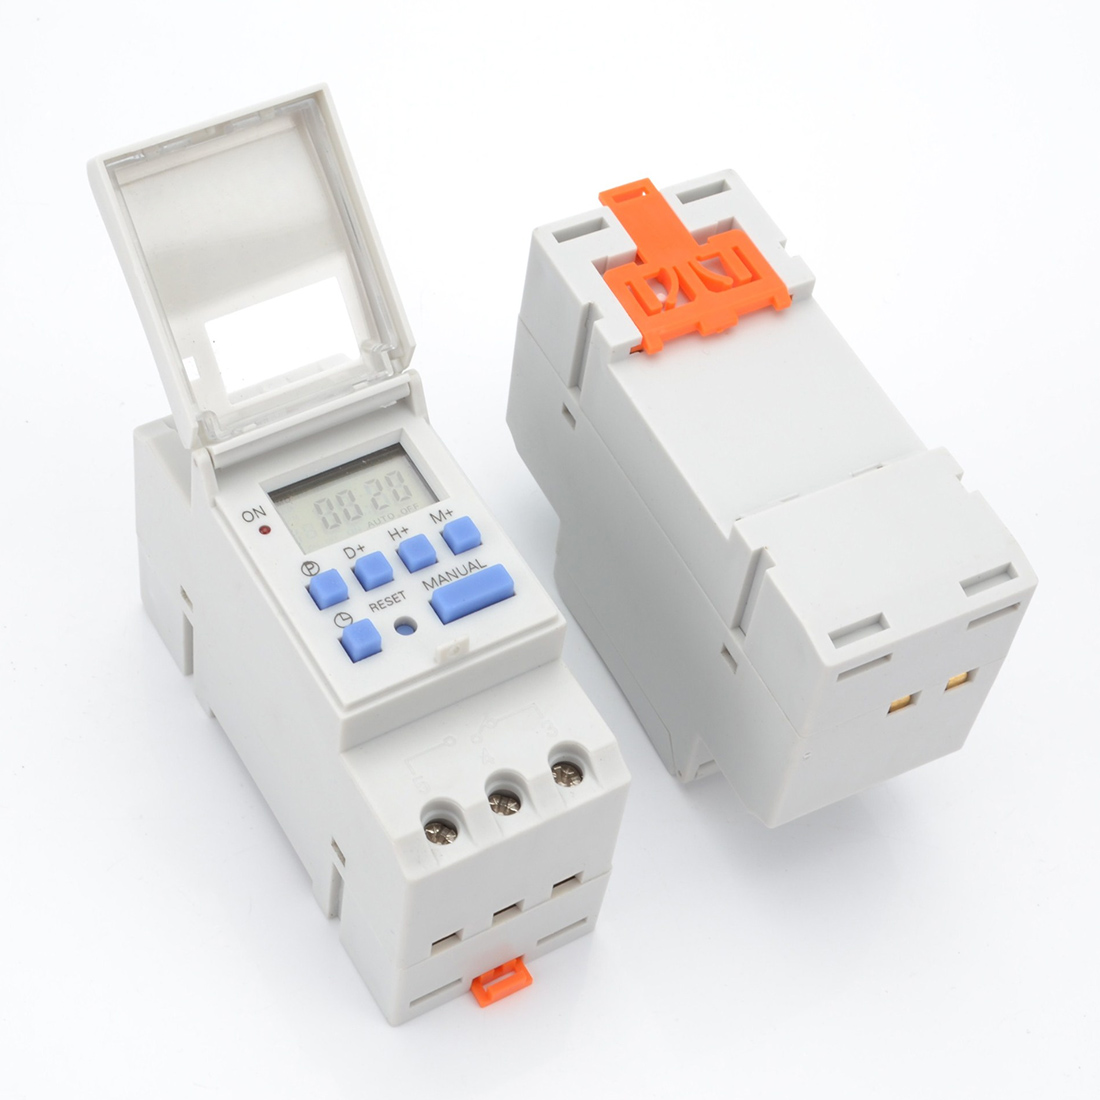 Ahc15 Ac 220v Digital Lcd Power Timer Programmable Time Switch Relay 5pcs Lot E08 Germany European Socket 16a 250v Korea Wiring Temporizador With Din Rail